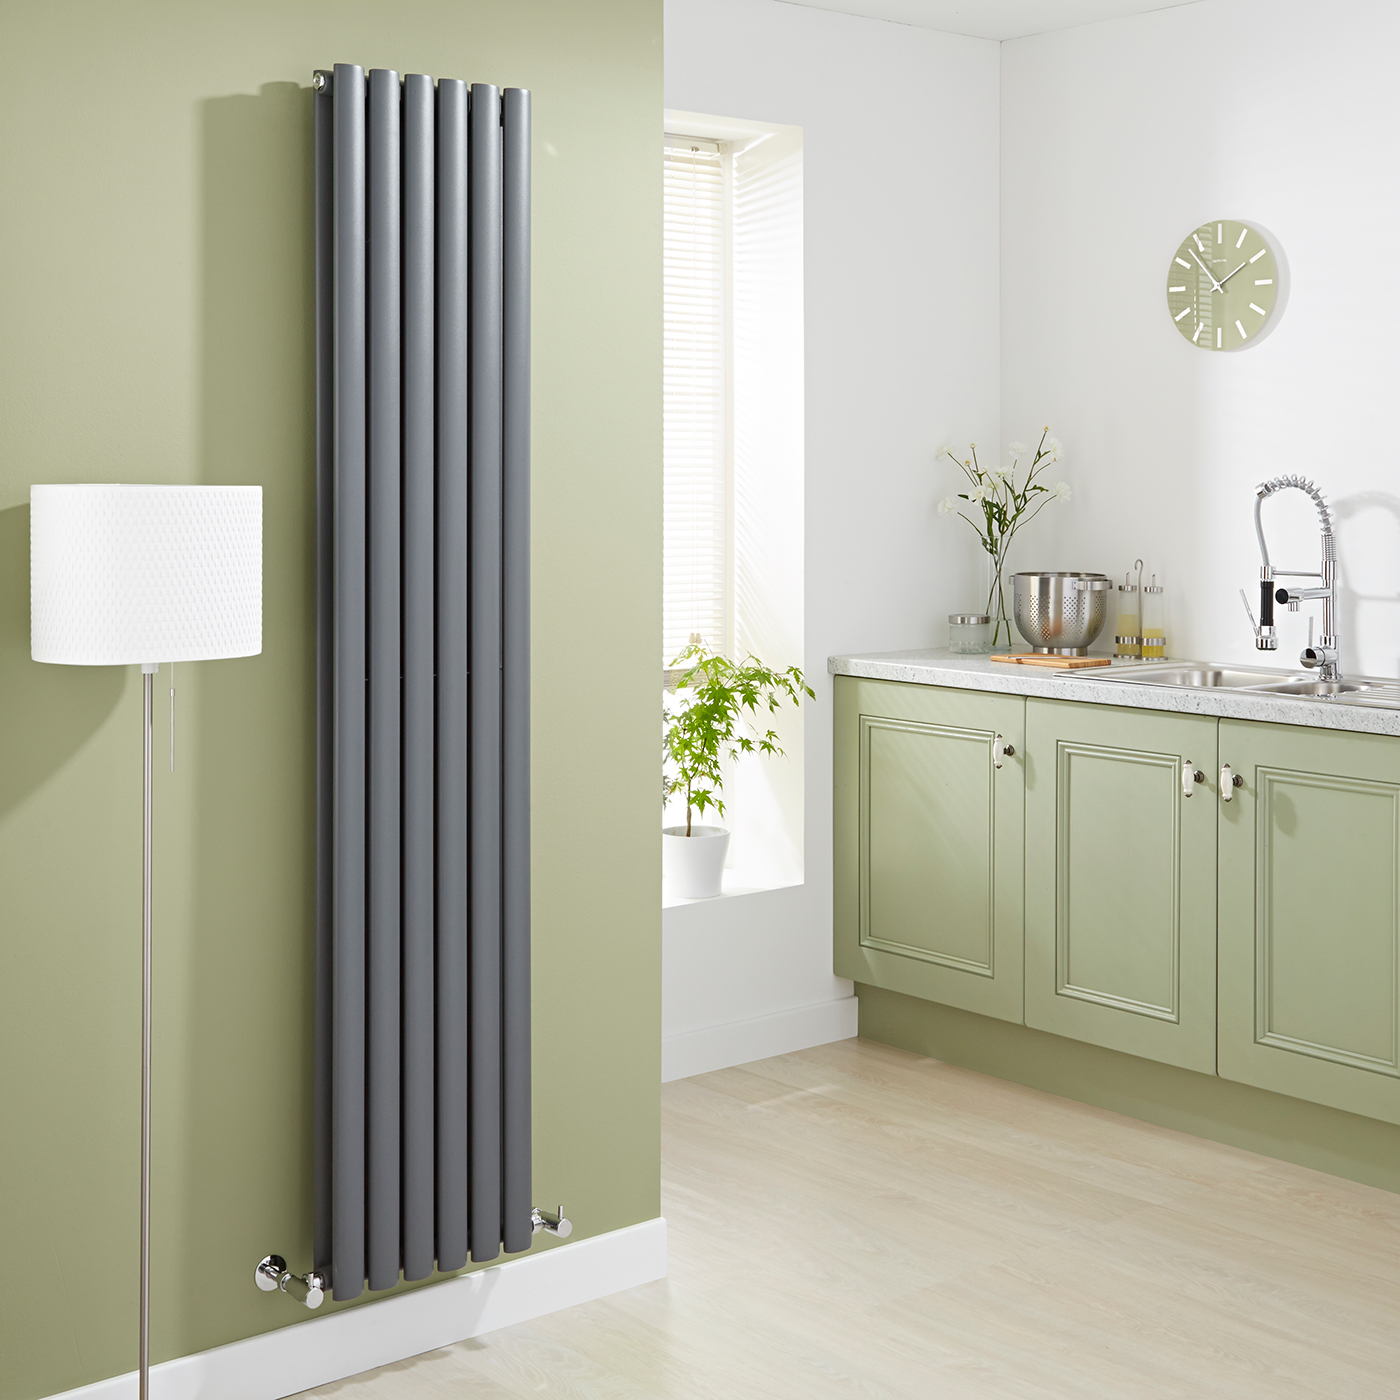 How To Choose The Best Radiators  Big Bathroom Shop. Antique Formal Living Room Furniture. Living Room Restaurant Bali Seminyak. The Living Room Channel 10 Cat. How To Decorate A Living Room In French Country. Model Home Living Room Design. Living Room Sofas Bangalore. Small Living Room Chairs Canada. Small Living Room Design Modern